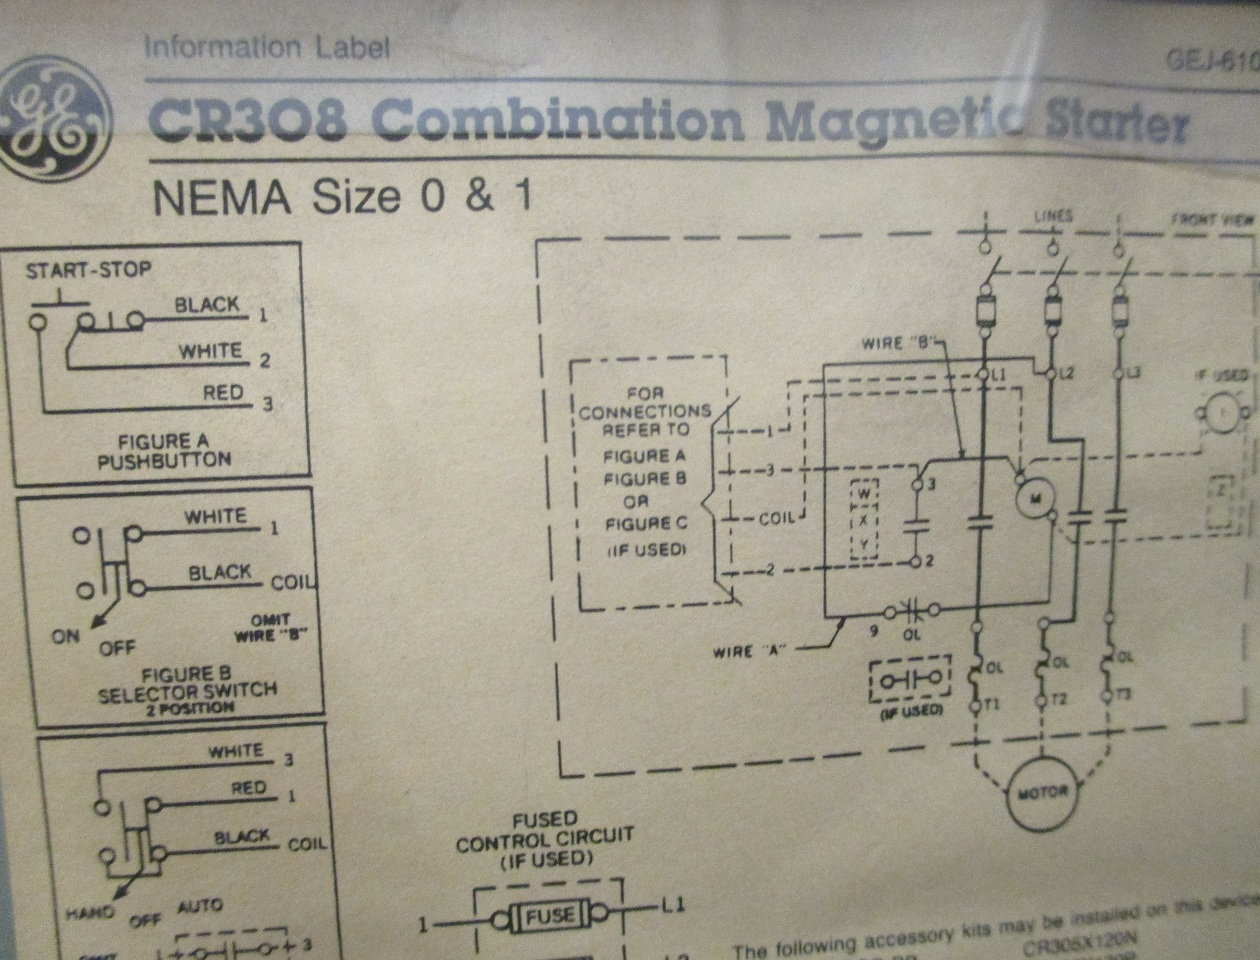 dis3585 ge combination magnetic starter cr308 600v max complete enclosure 300 line control 3?resize\=665%2C507 ge cr 308 motor starter wiring diagram wiring diagrams  at gsmx.co